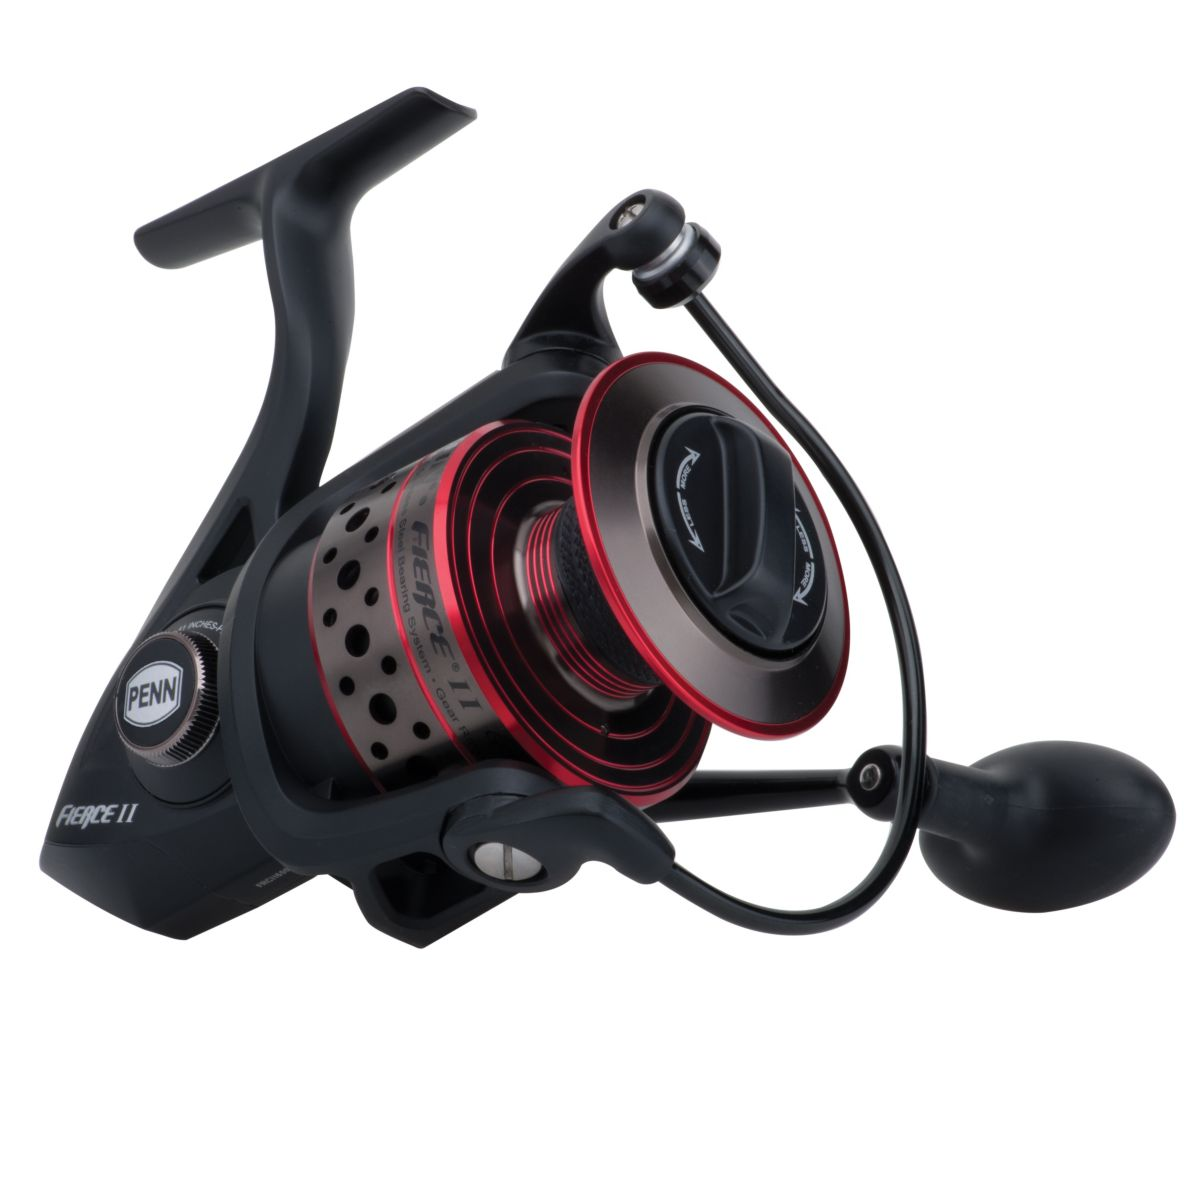 Penn Fierce II FRCII3000 Spinning Reel